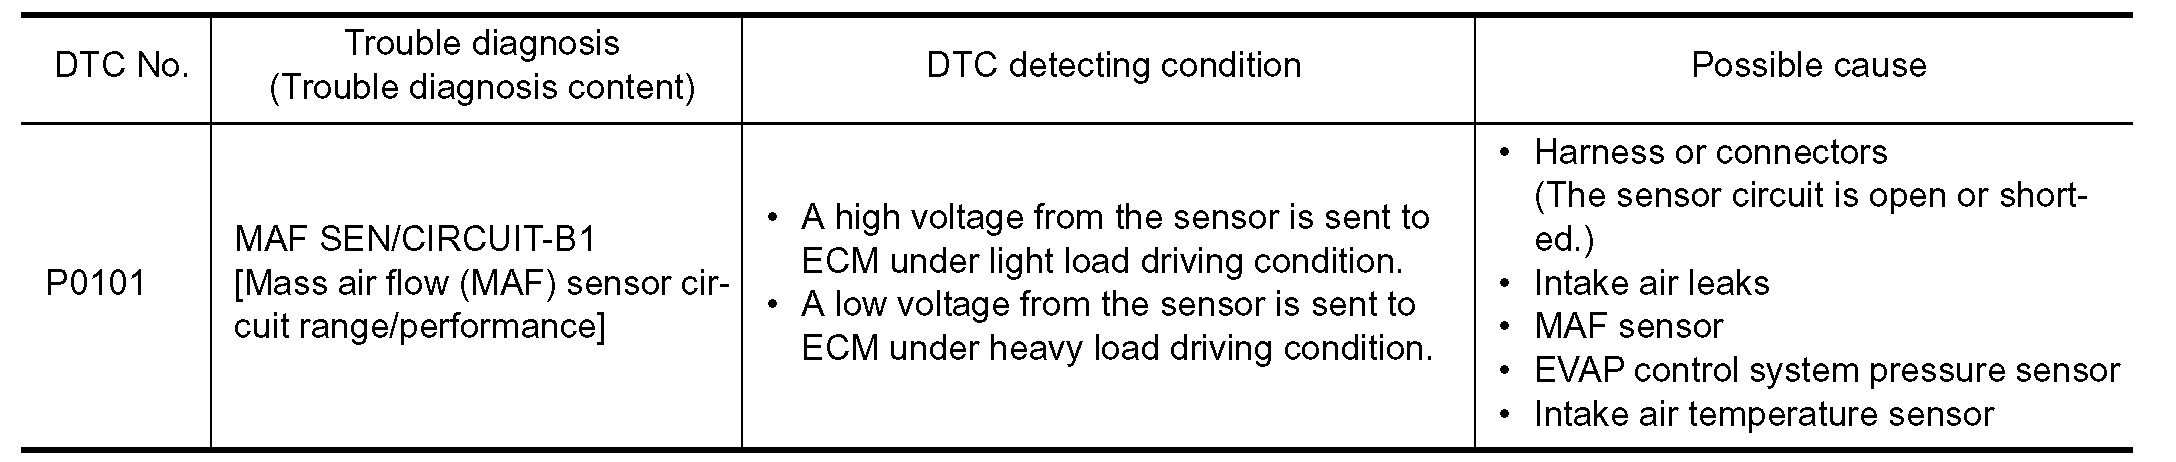 M Air Flow Sensor: I Have Replaced My MAF Sensor Three ...  Nissan Frontier Wiring Diagram Maf on 2004 nissan murano wiring diagram, nissan frontier stereo wiring diagram, 2010 nissan sentra wiring diagram, 2002 nissan frontier brake system, 2008 nissan frontier wiring diagram, 2006 nissan murano wiring diagram, 2002 nissan frontier coil, 2008 nissan armada wiring diagram, 2002 nissan frontier seats, 2012 nissan sentra wiring diagram, 2010 nissan cube wiring diagram, 2002 nissan frontier fuel tank, 2002 nissan xterra audio wiring, 2009 nissan cube wiring diagram, 2002 nissan frontier water pump, 2002 nissan frontier transmission, 2004 nissan armada wiring diagram, nissan wiring harness diagram, 1998 nissan frontier wiring diagram, 2002 nissan frontier door panel removal,